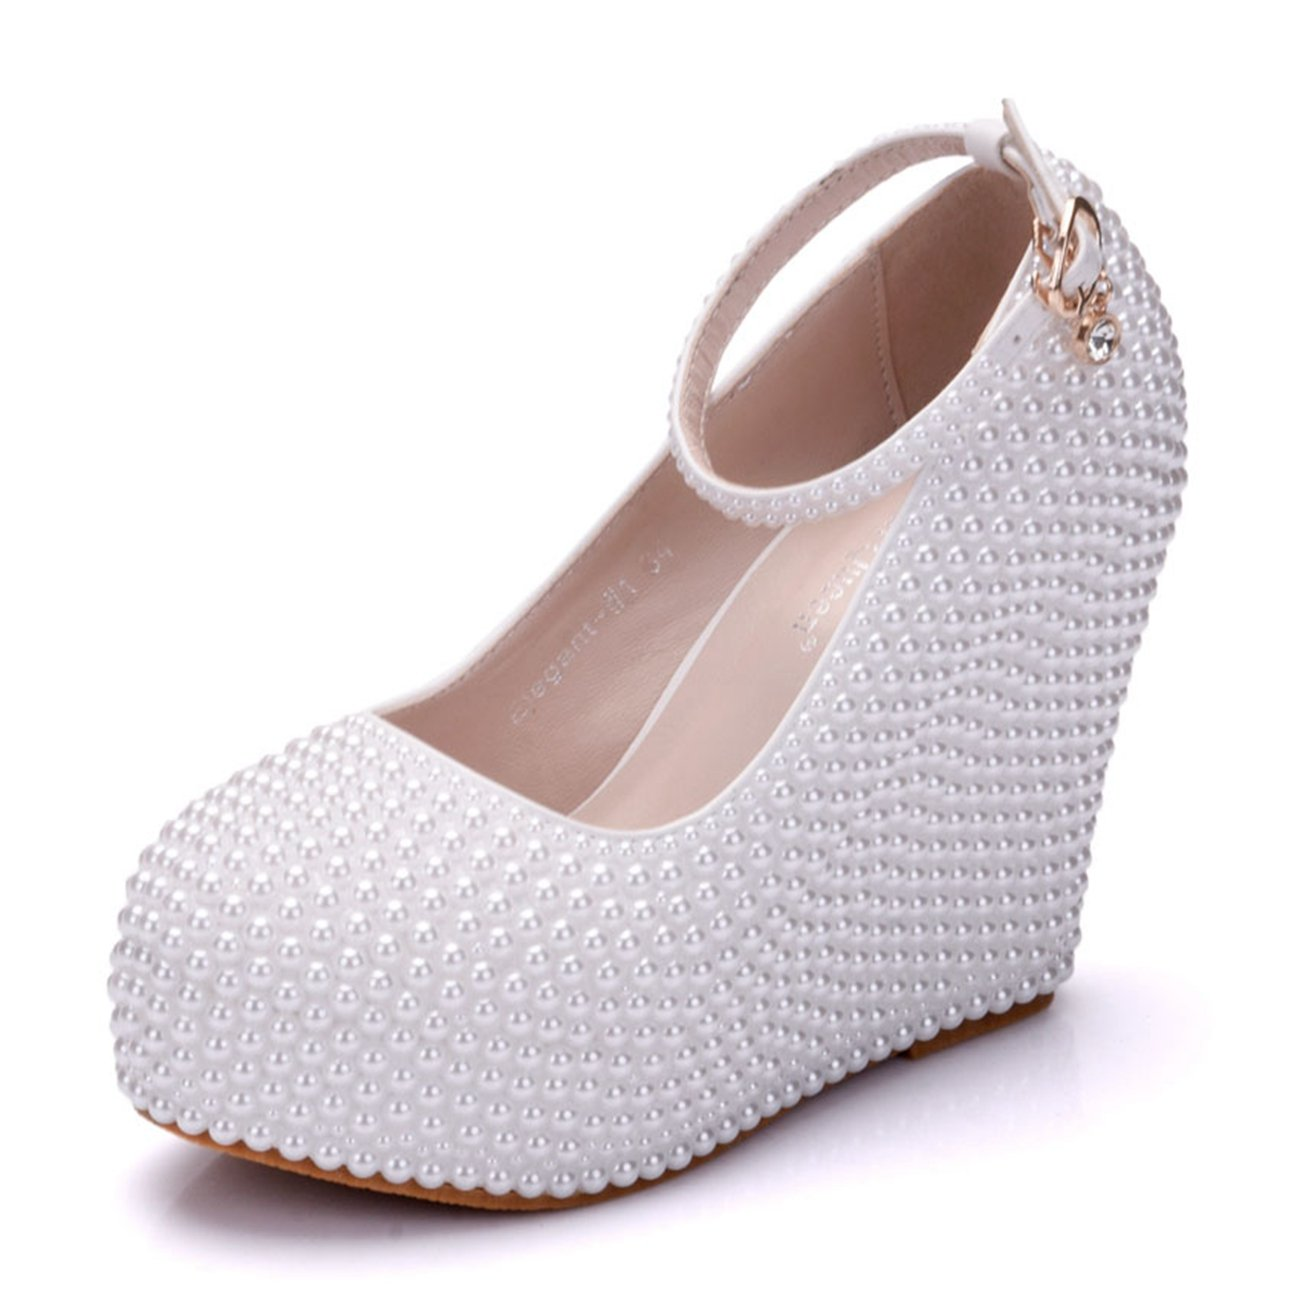 Minishion Womens Hidden High Platform Pearl Beading Wedge Heel Wedding Evening Shoes B07559LMBP 4 B(M) US|White-10cm Heel